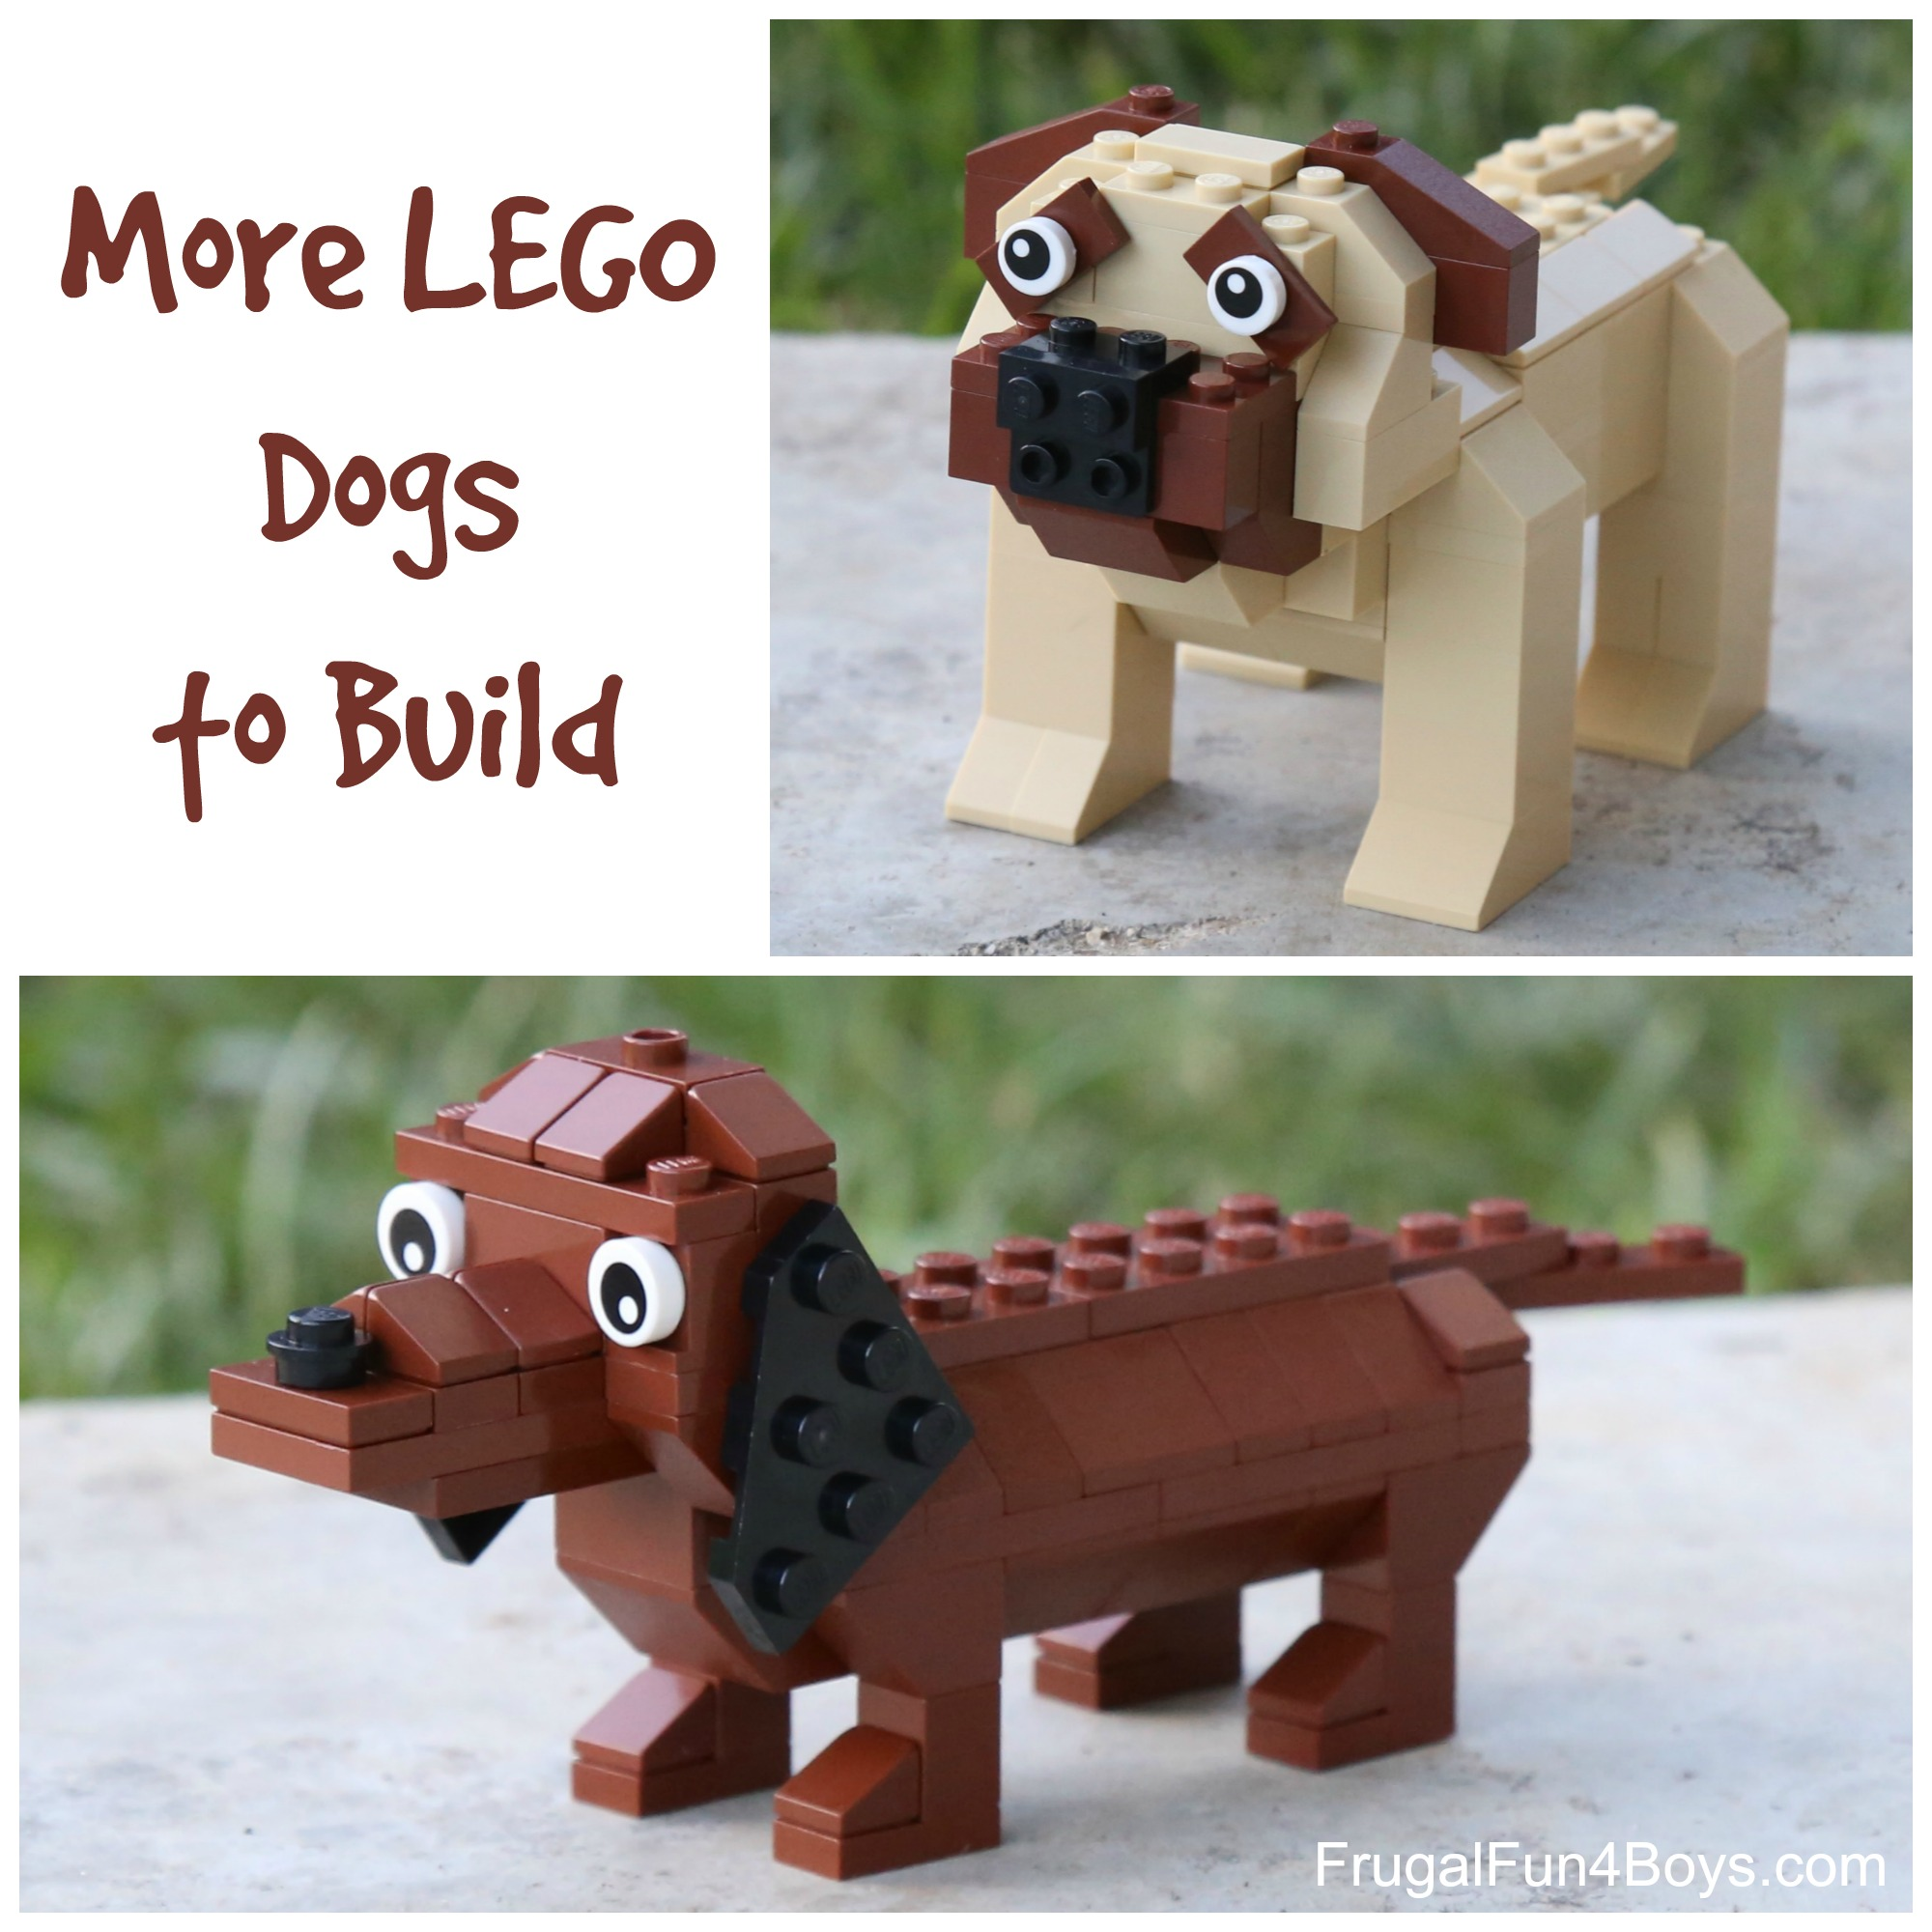 More lego dogs FB